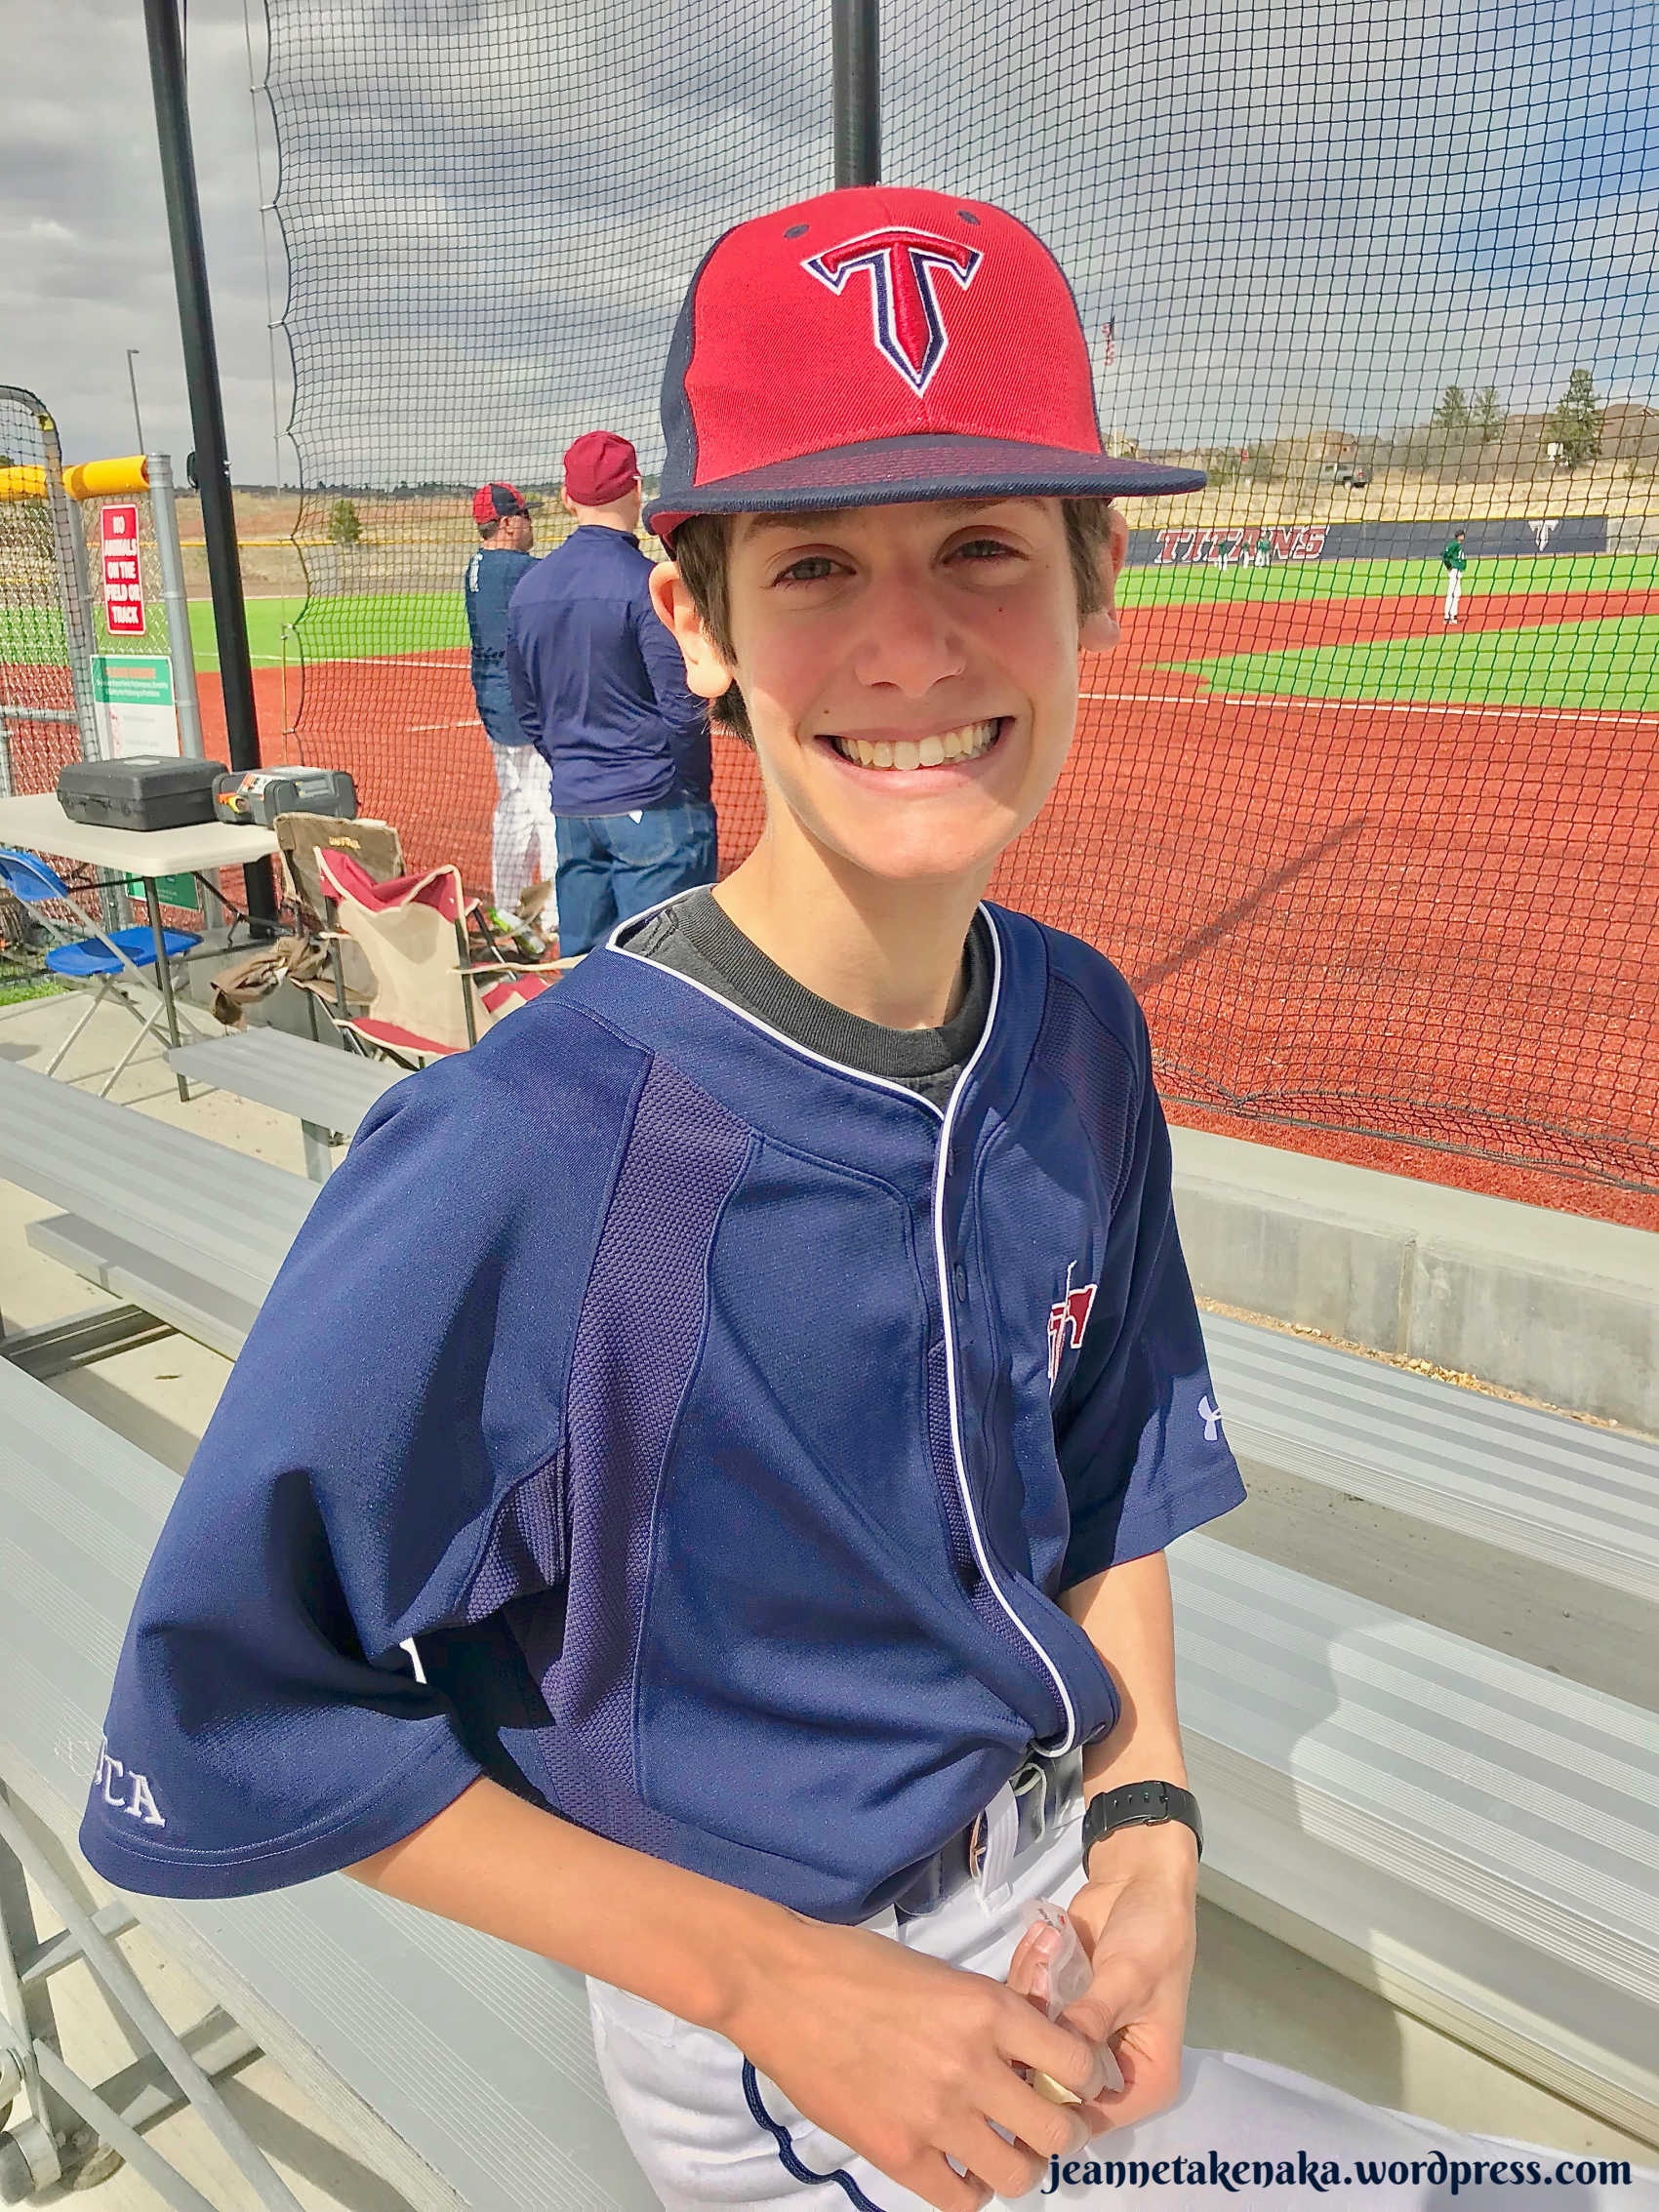 Perspective: Peter sitting on the bleachers in his baseball uniform posing for a photo